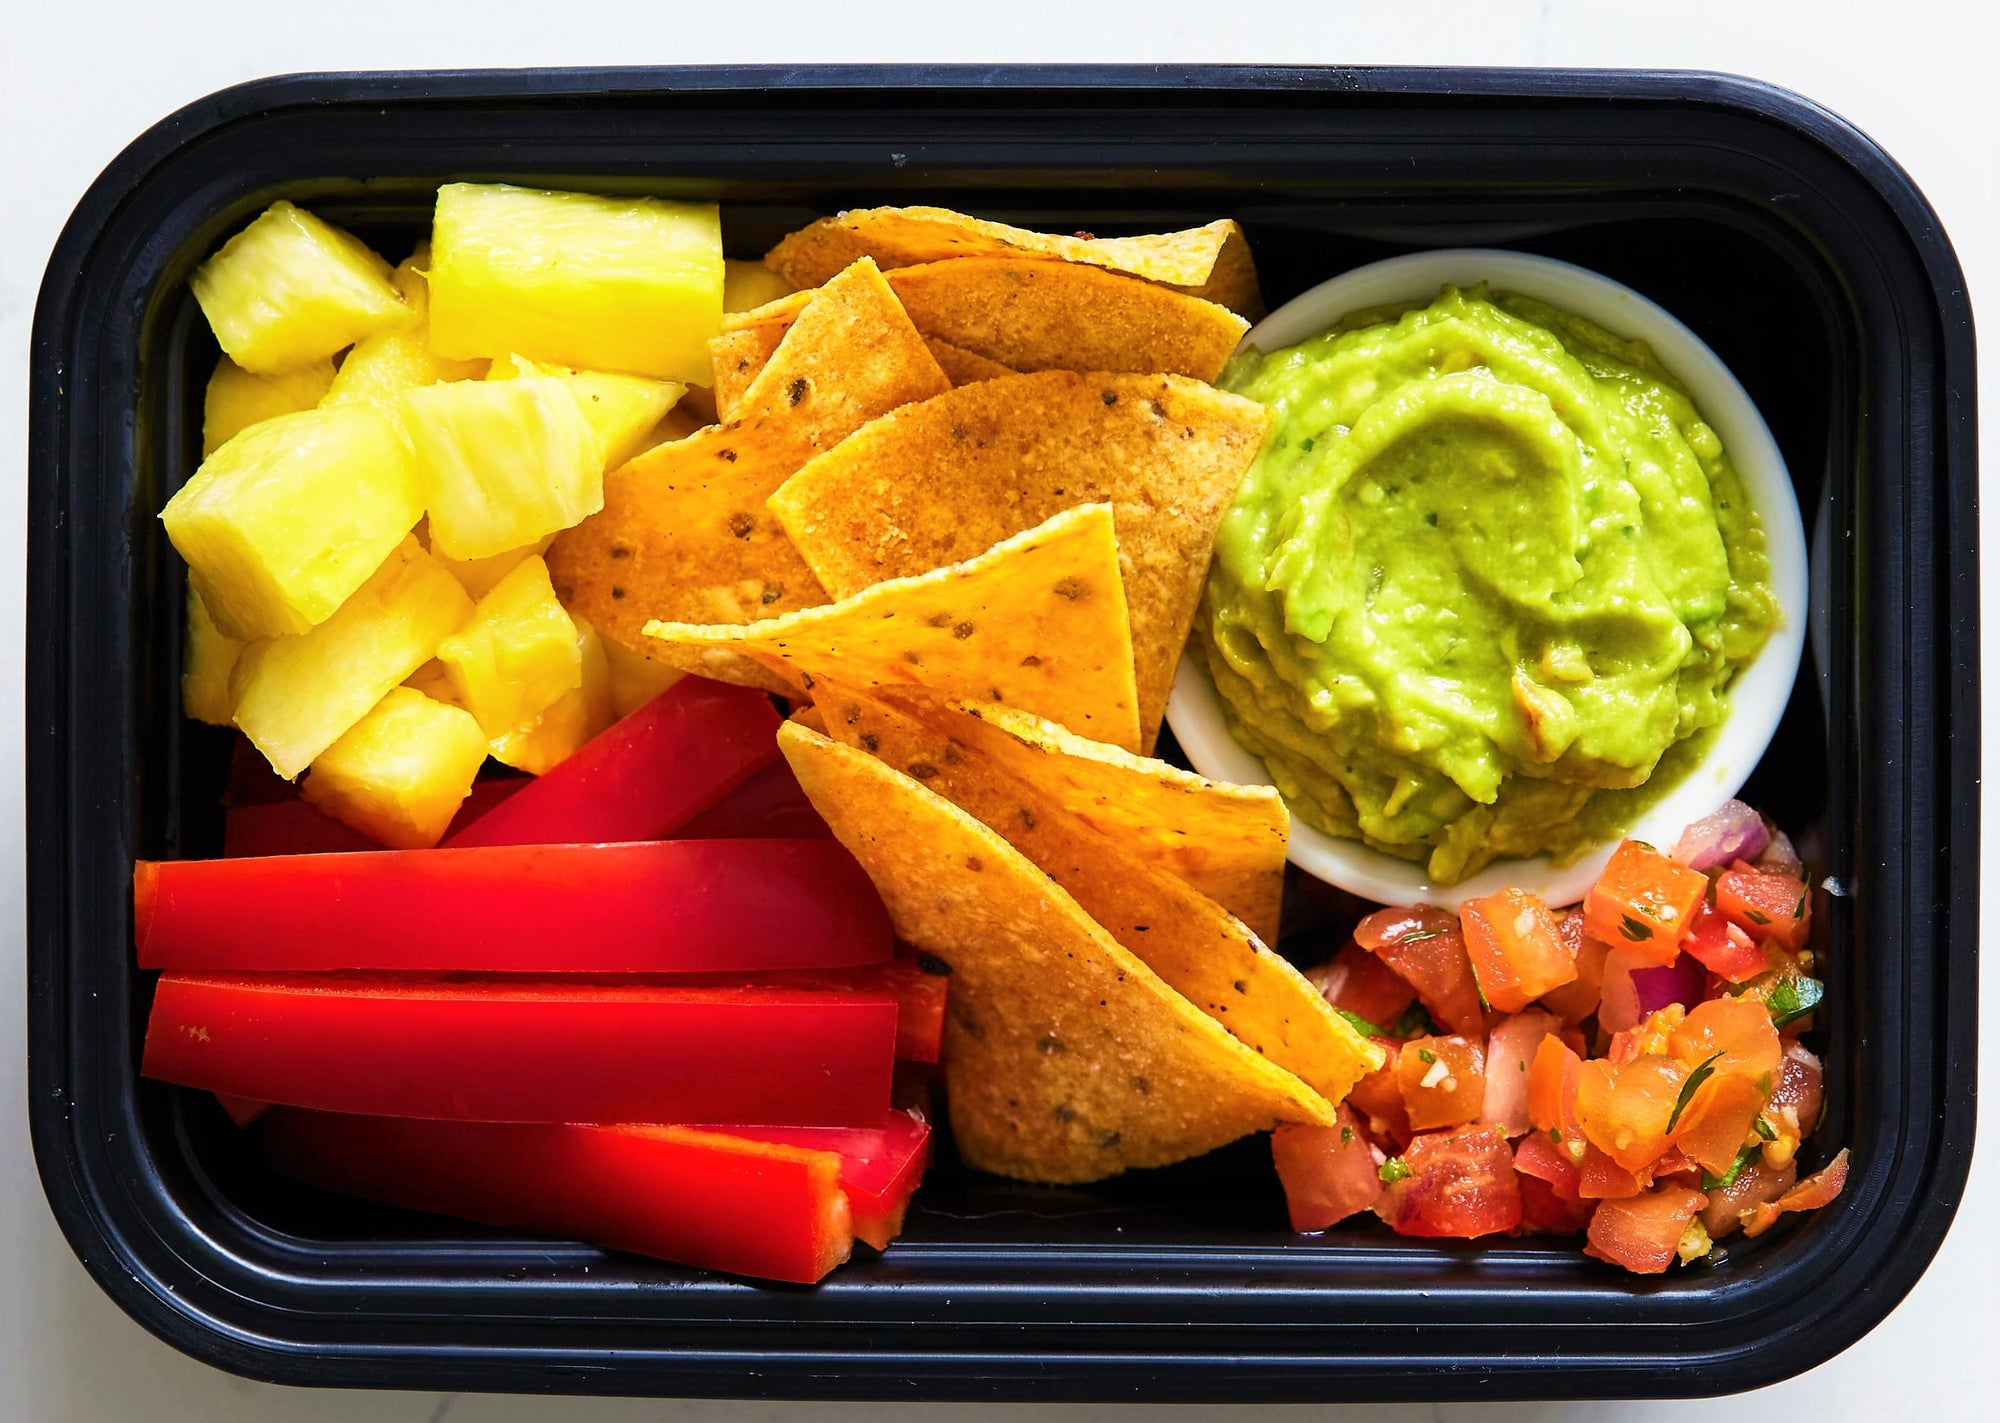 House-made Chips and Dips Snack Box - GreenMeal Inc.